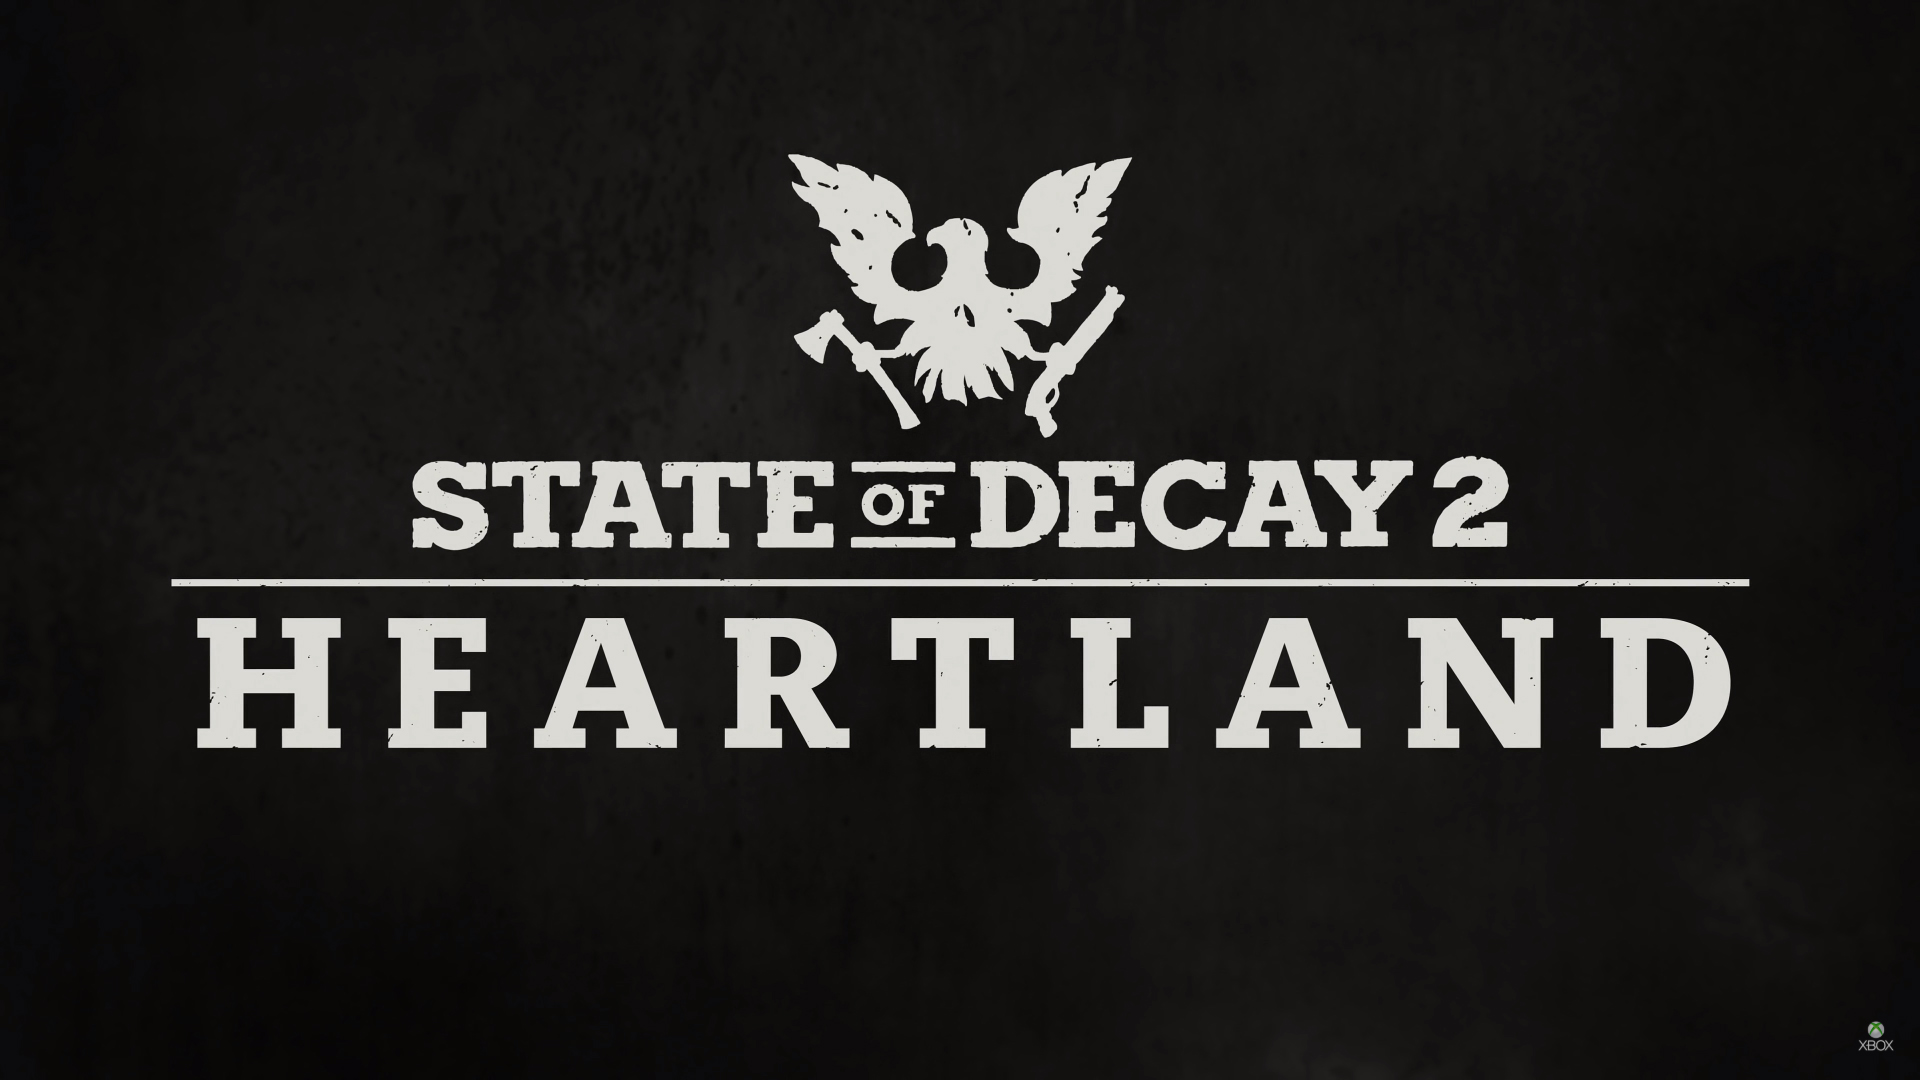 (State Od decay 2: heartland)